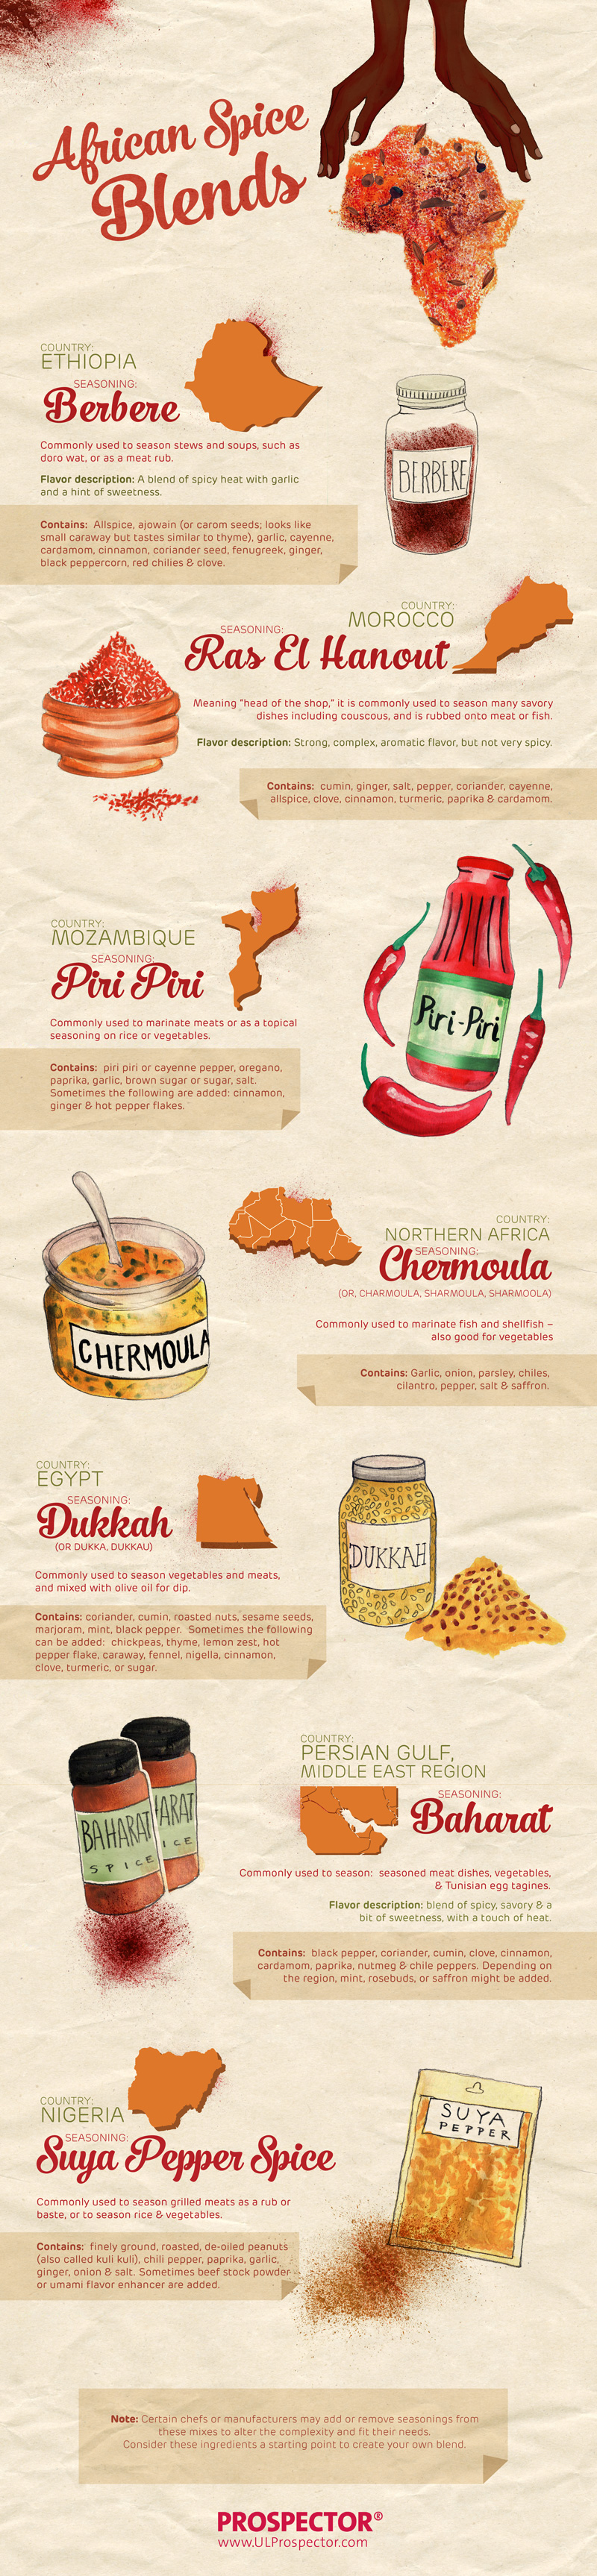 African Spice Blends